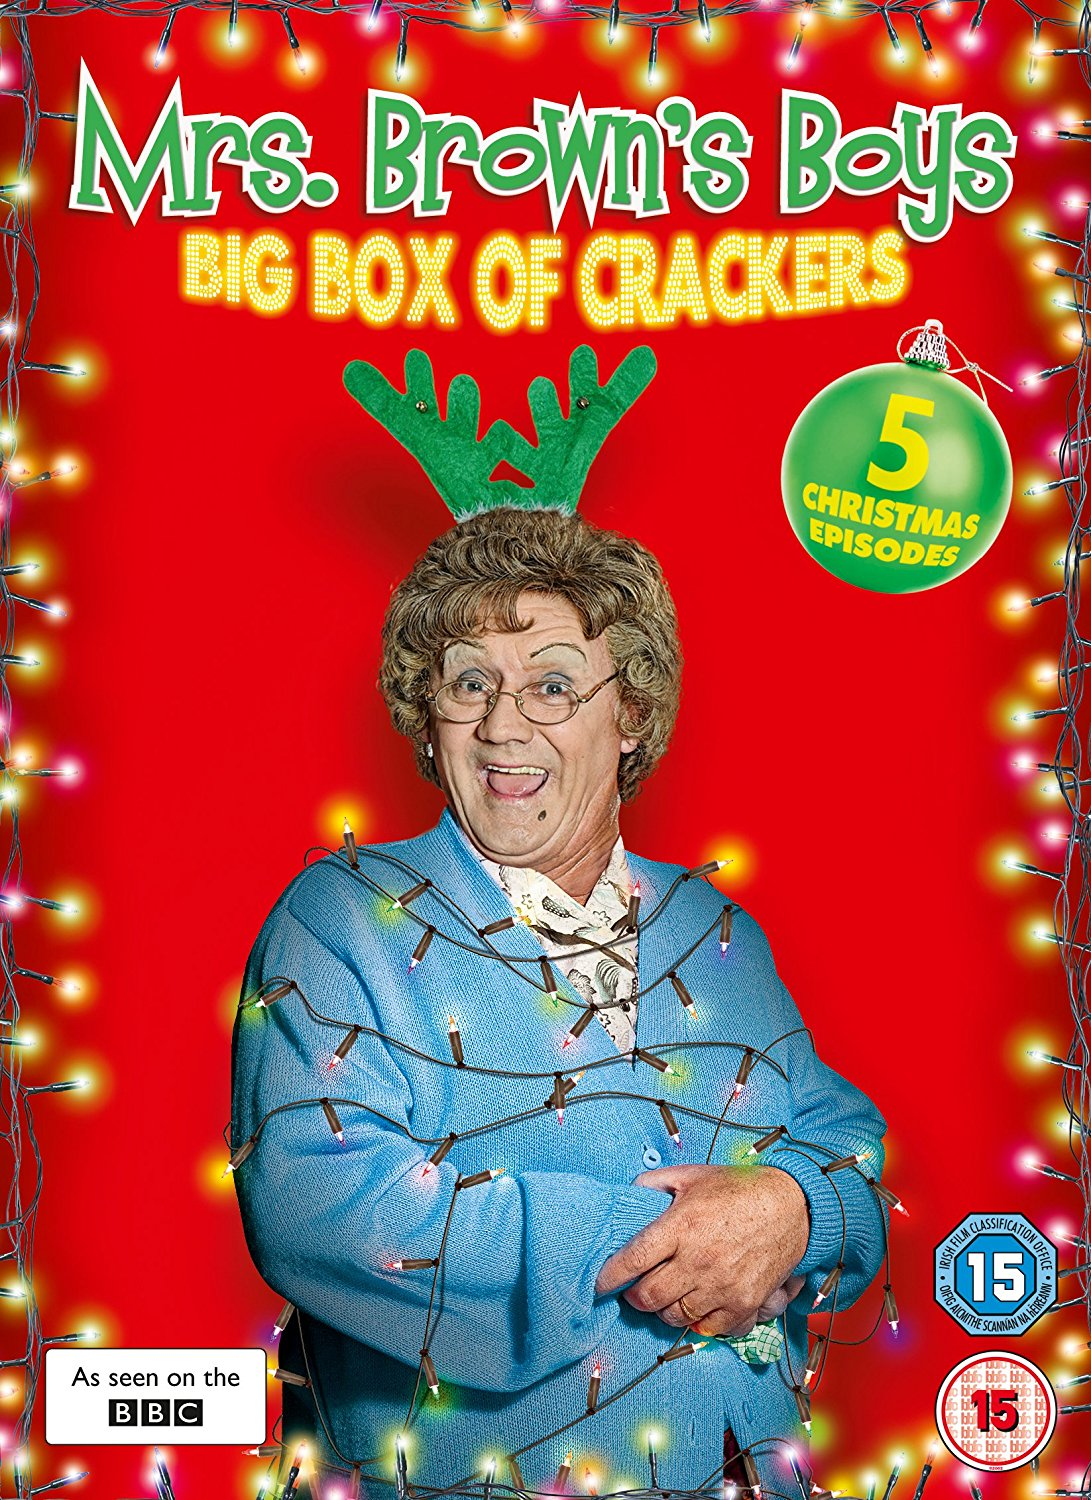 Mrs Browns Boys - Christmas Crackers Boxset (DVD)